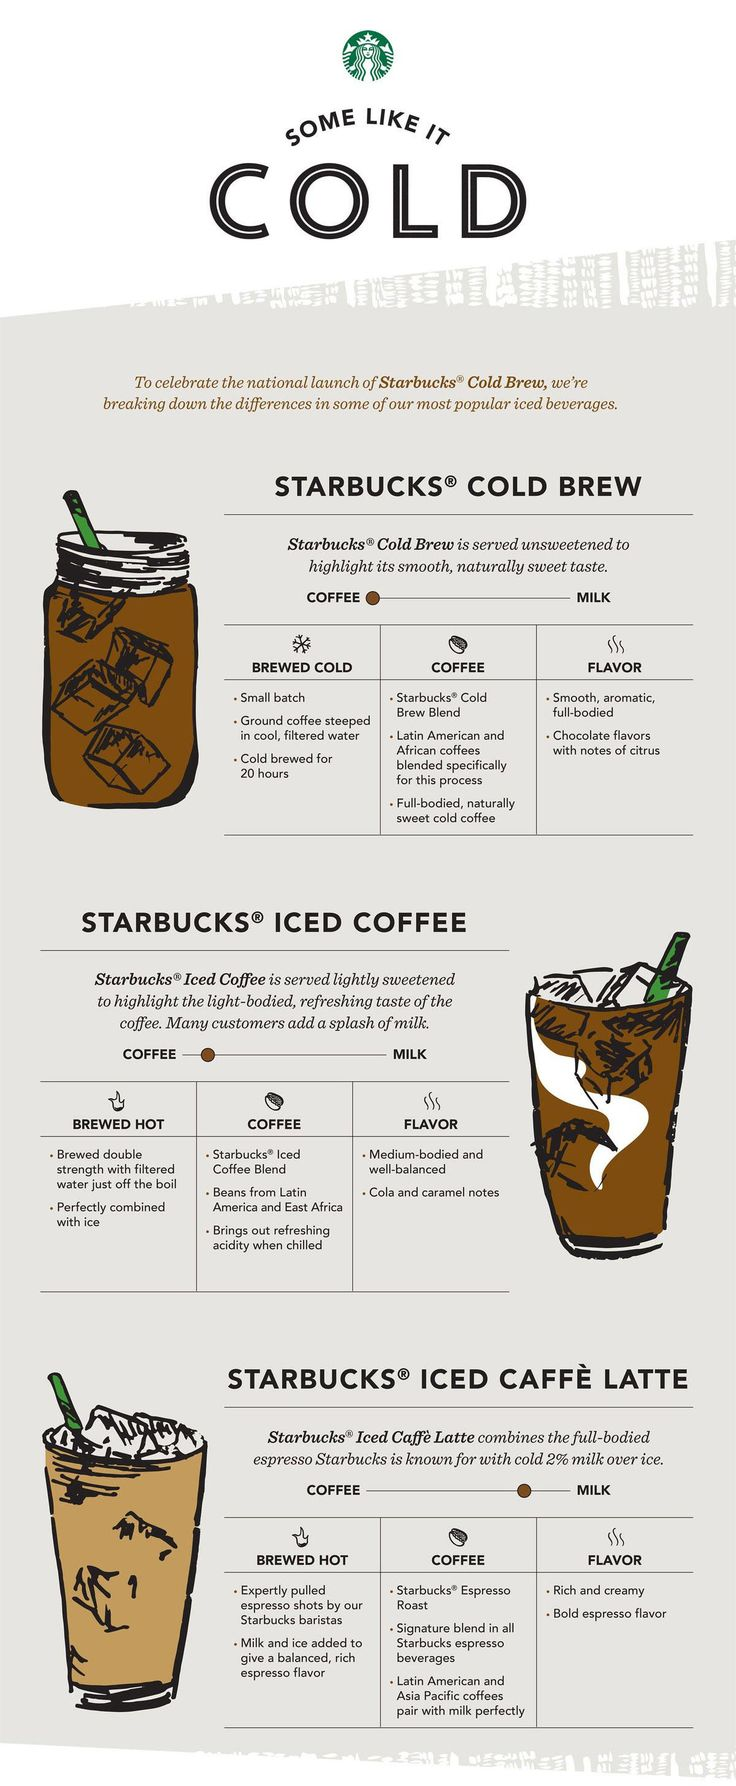 Here are the differences between the most popular Starbucks beverages.